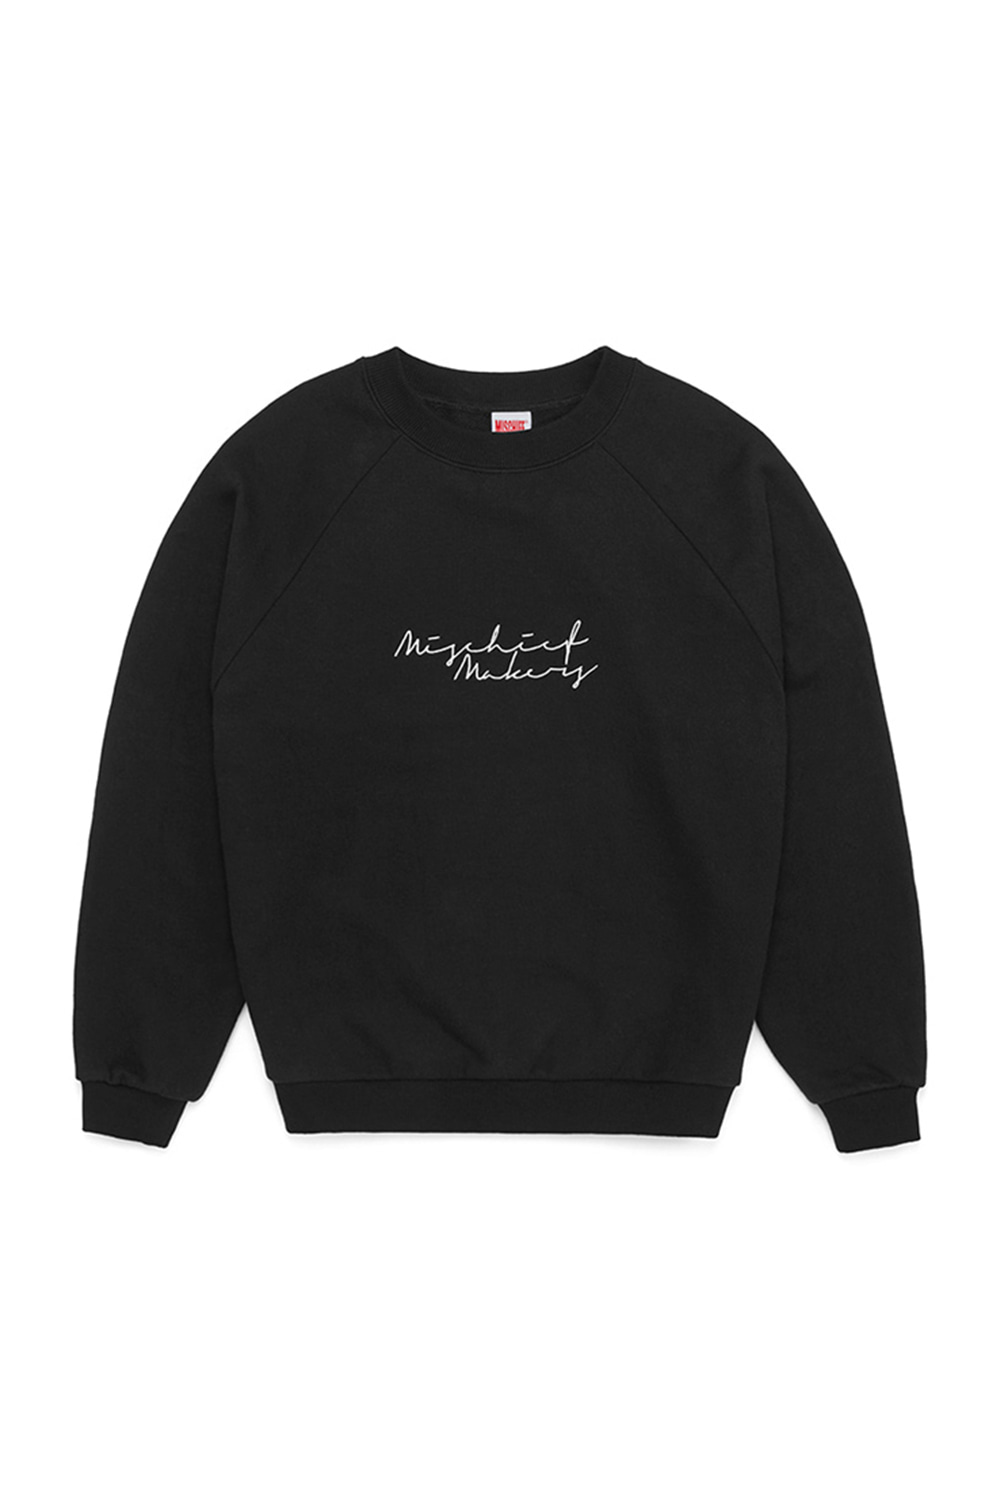 SWEATSUIT_CREWNECK_black